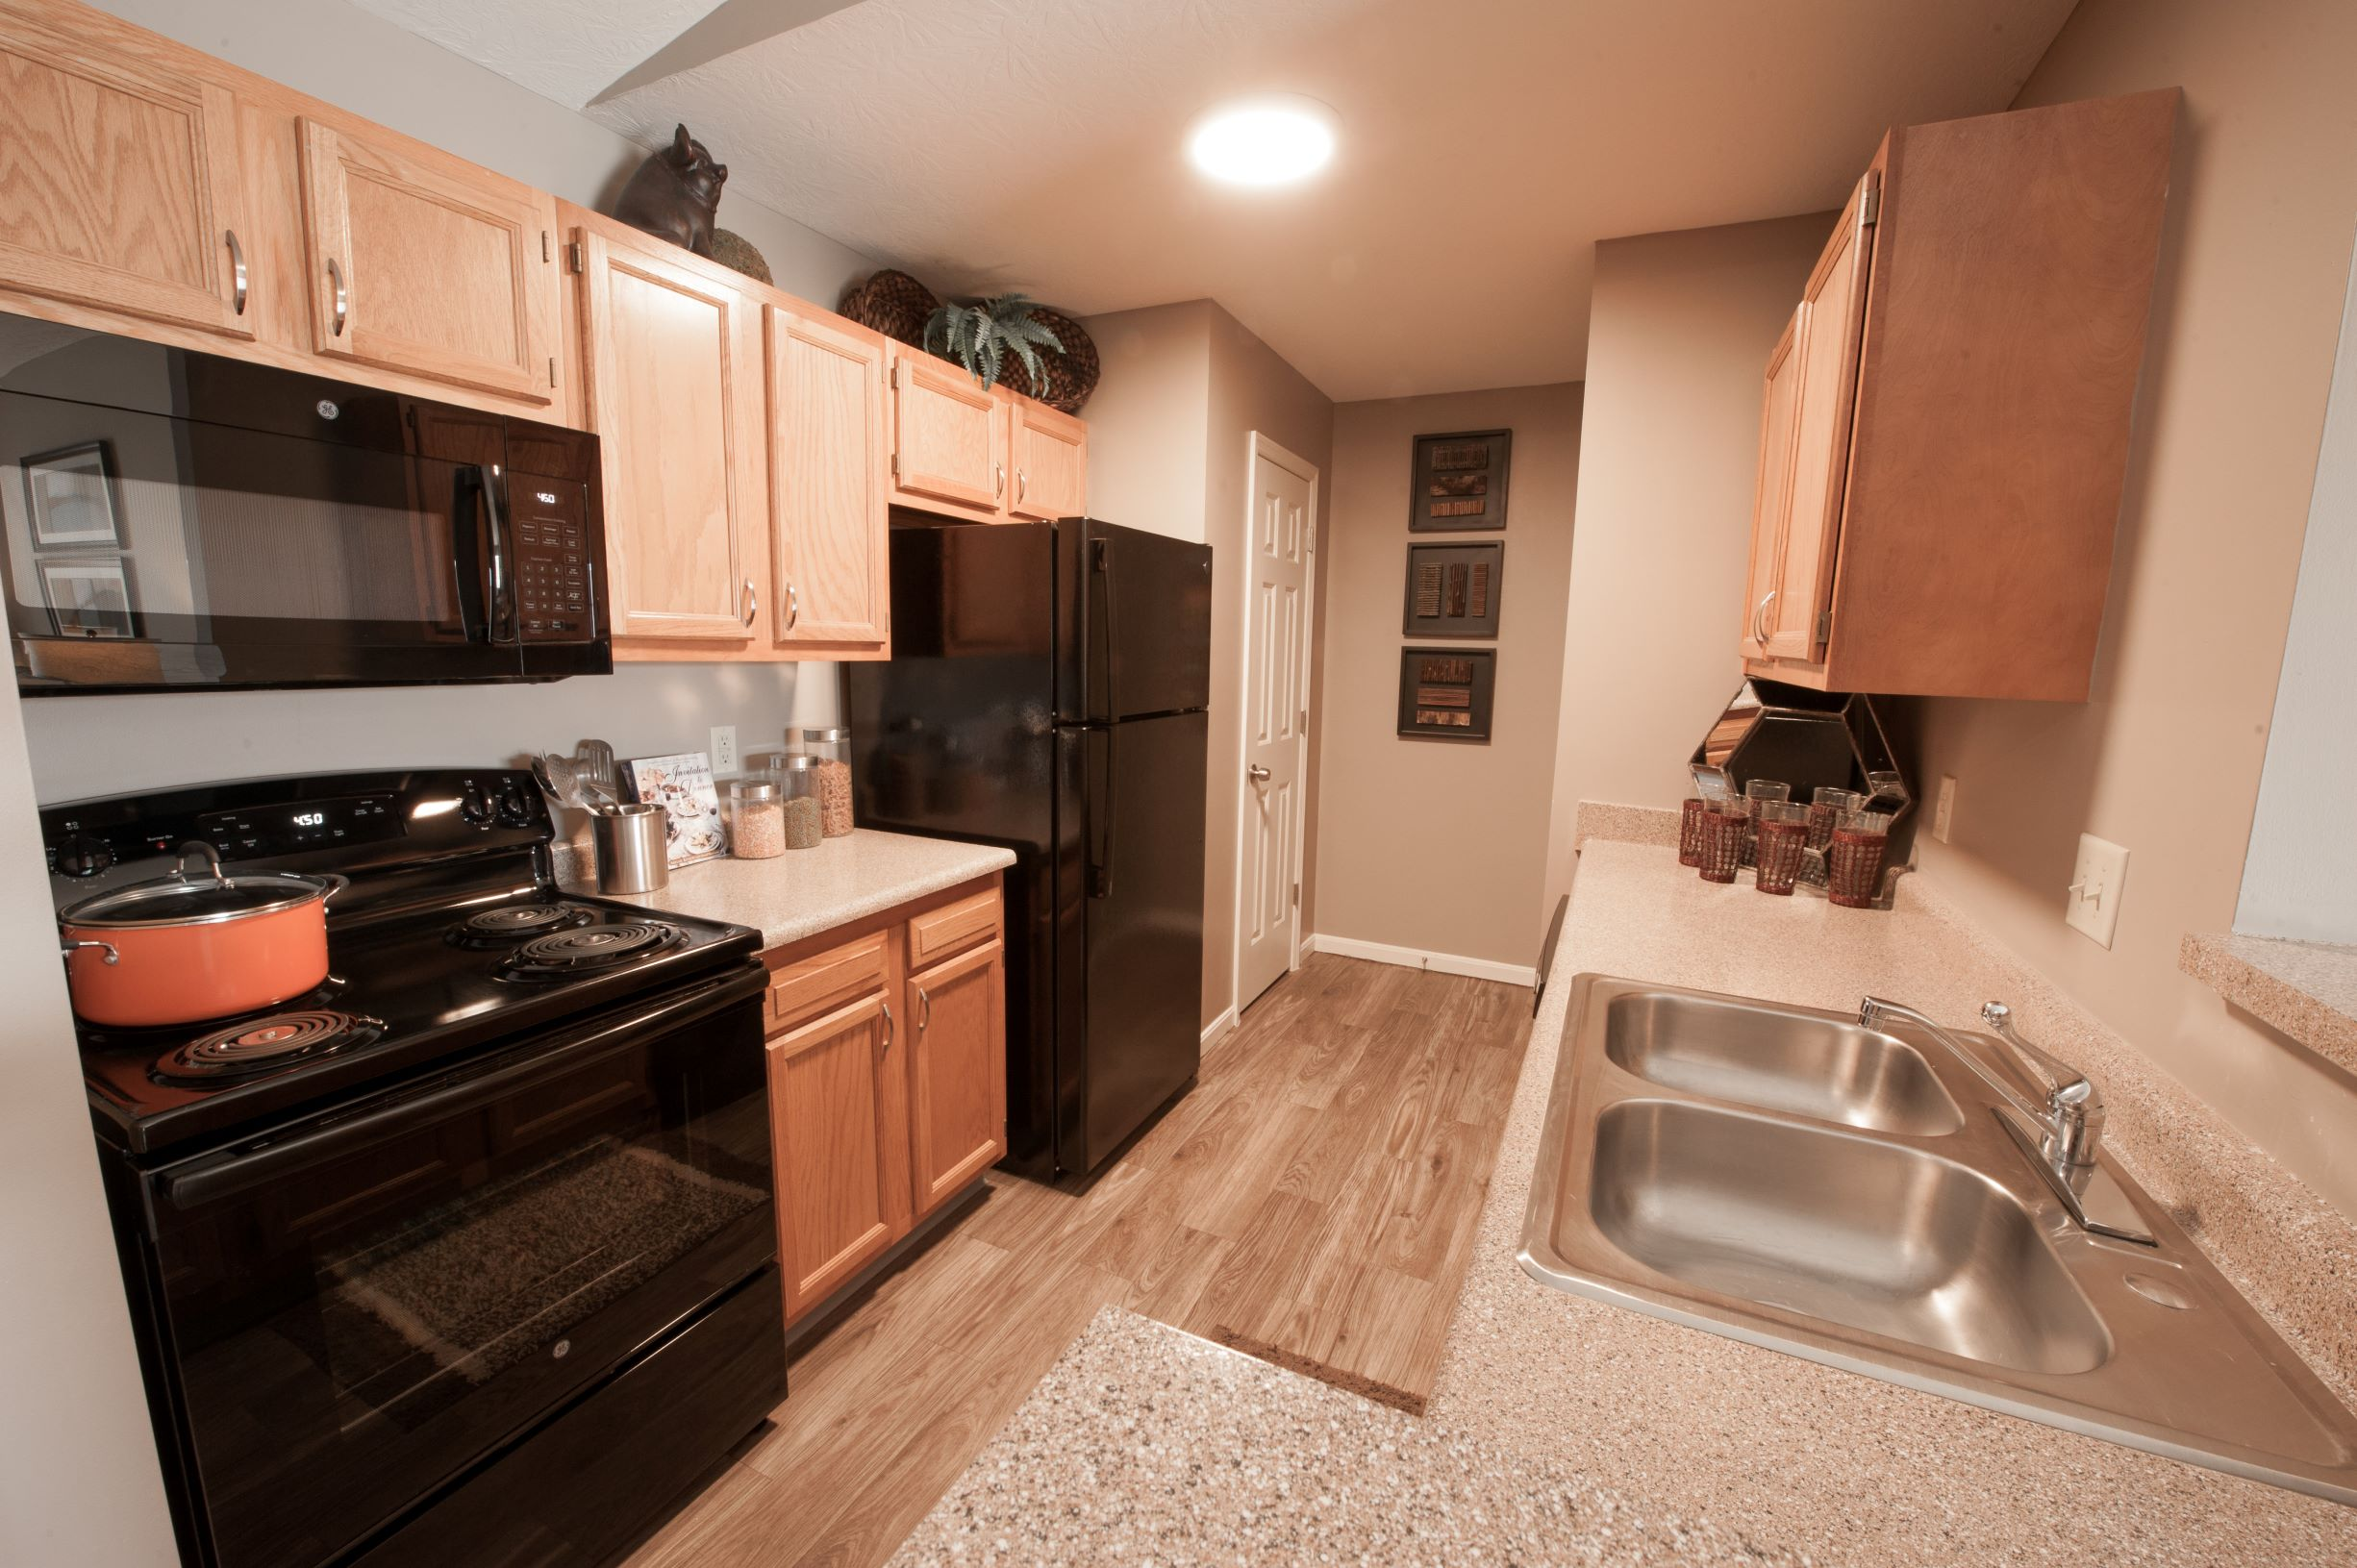 Full Suite of Kitchen Appliances at Stone Bridge Apartments in Mason, Ohio